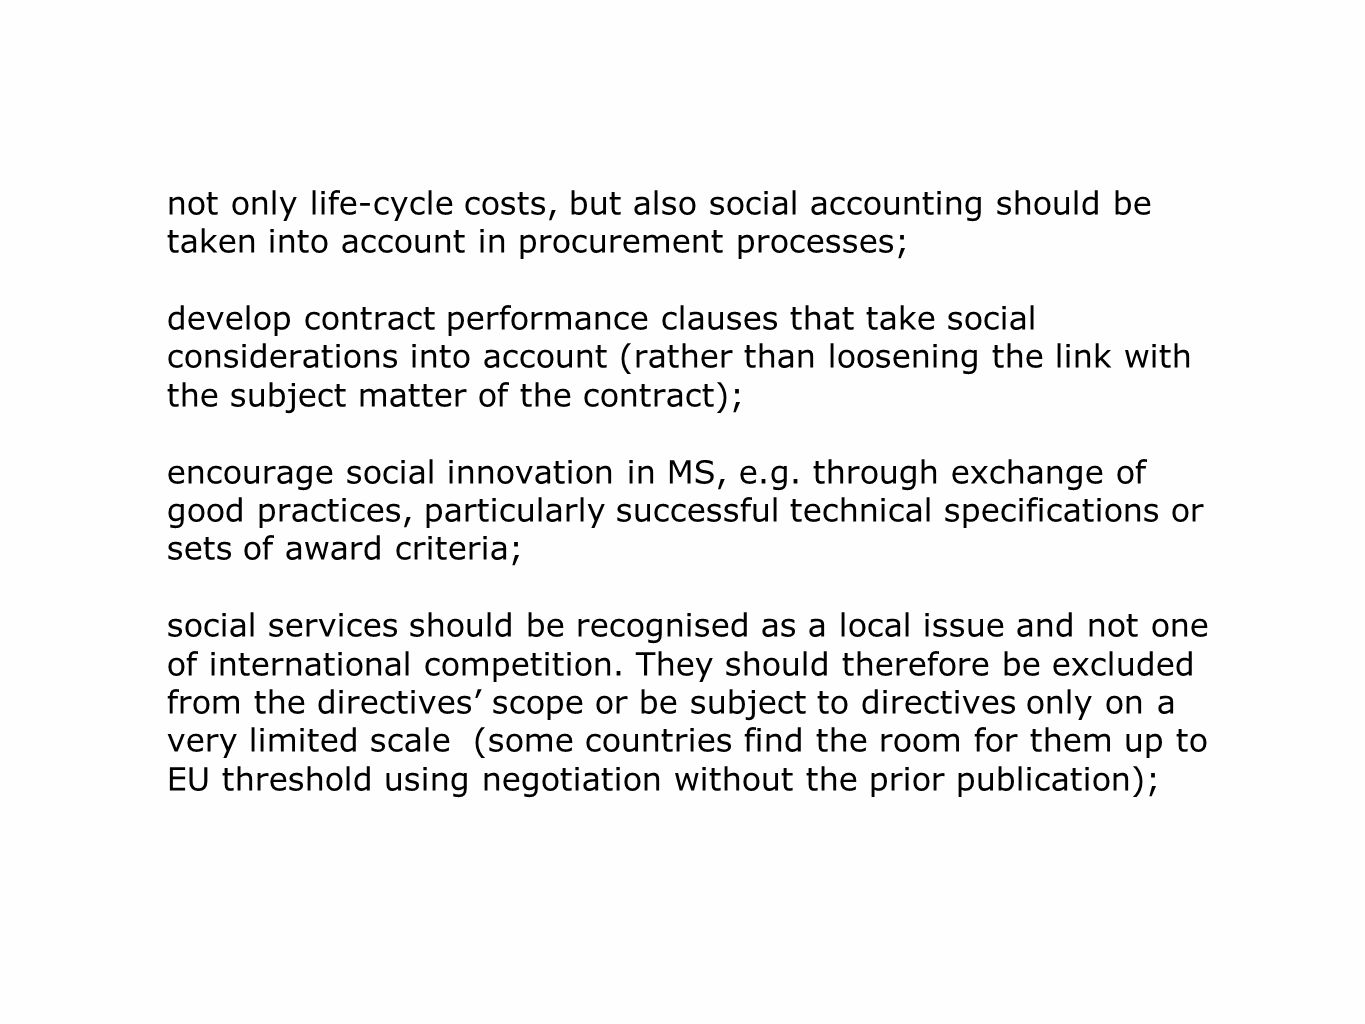 not only life-cycle costs, but also social accounting should be taken into account in procurement processes; develop contract performance clauses that take social considerations into account (rather than loosening the link with the subject matter of the contract); encourage social innovation in MS, e.g.